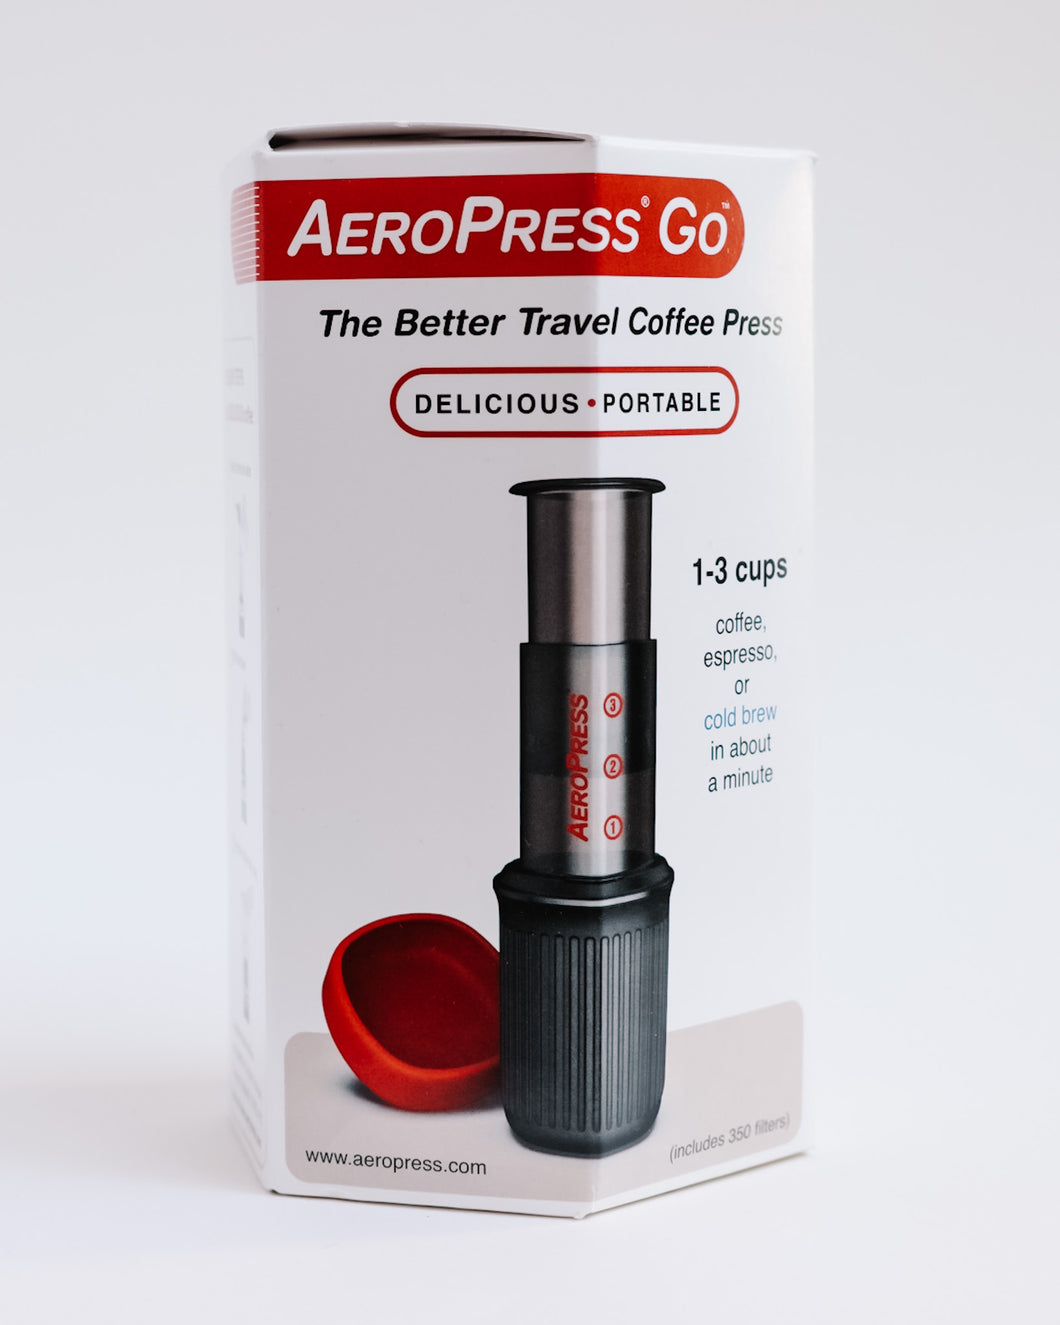 Aeropress GO Travel Coffee Maker - BPA Free